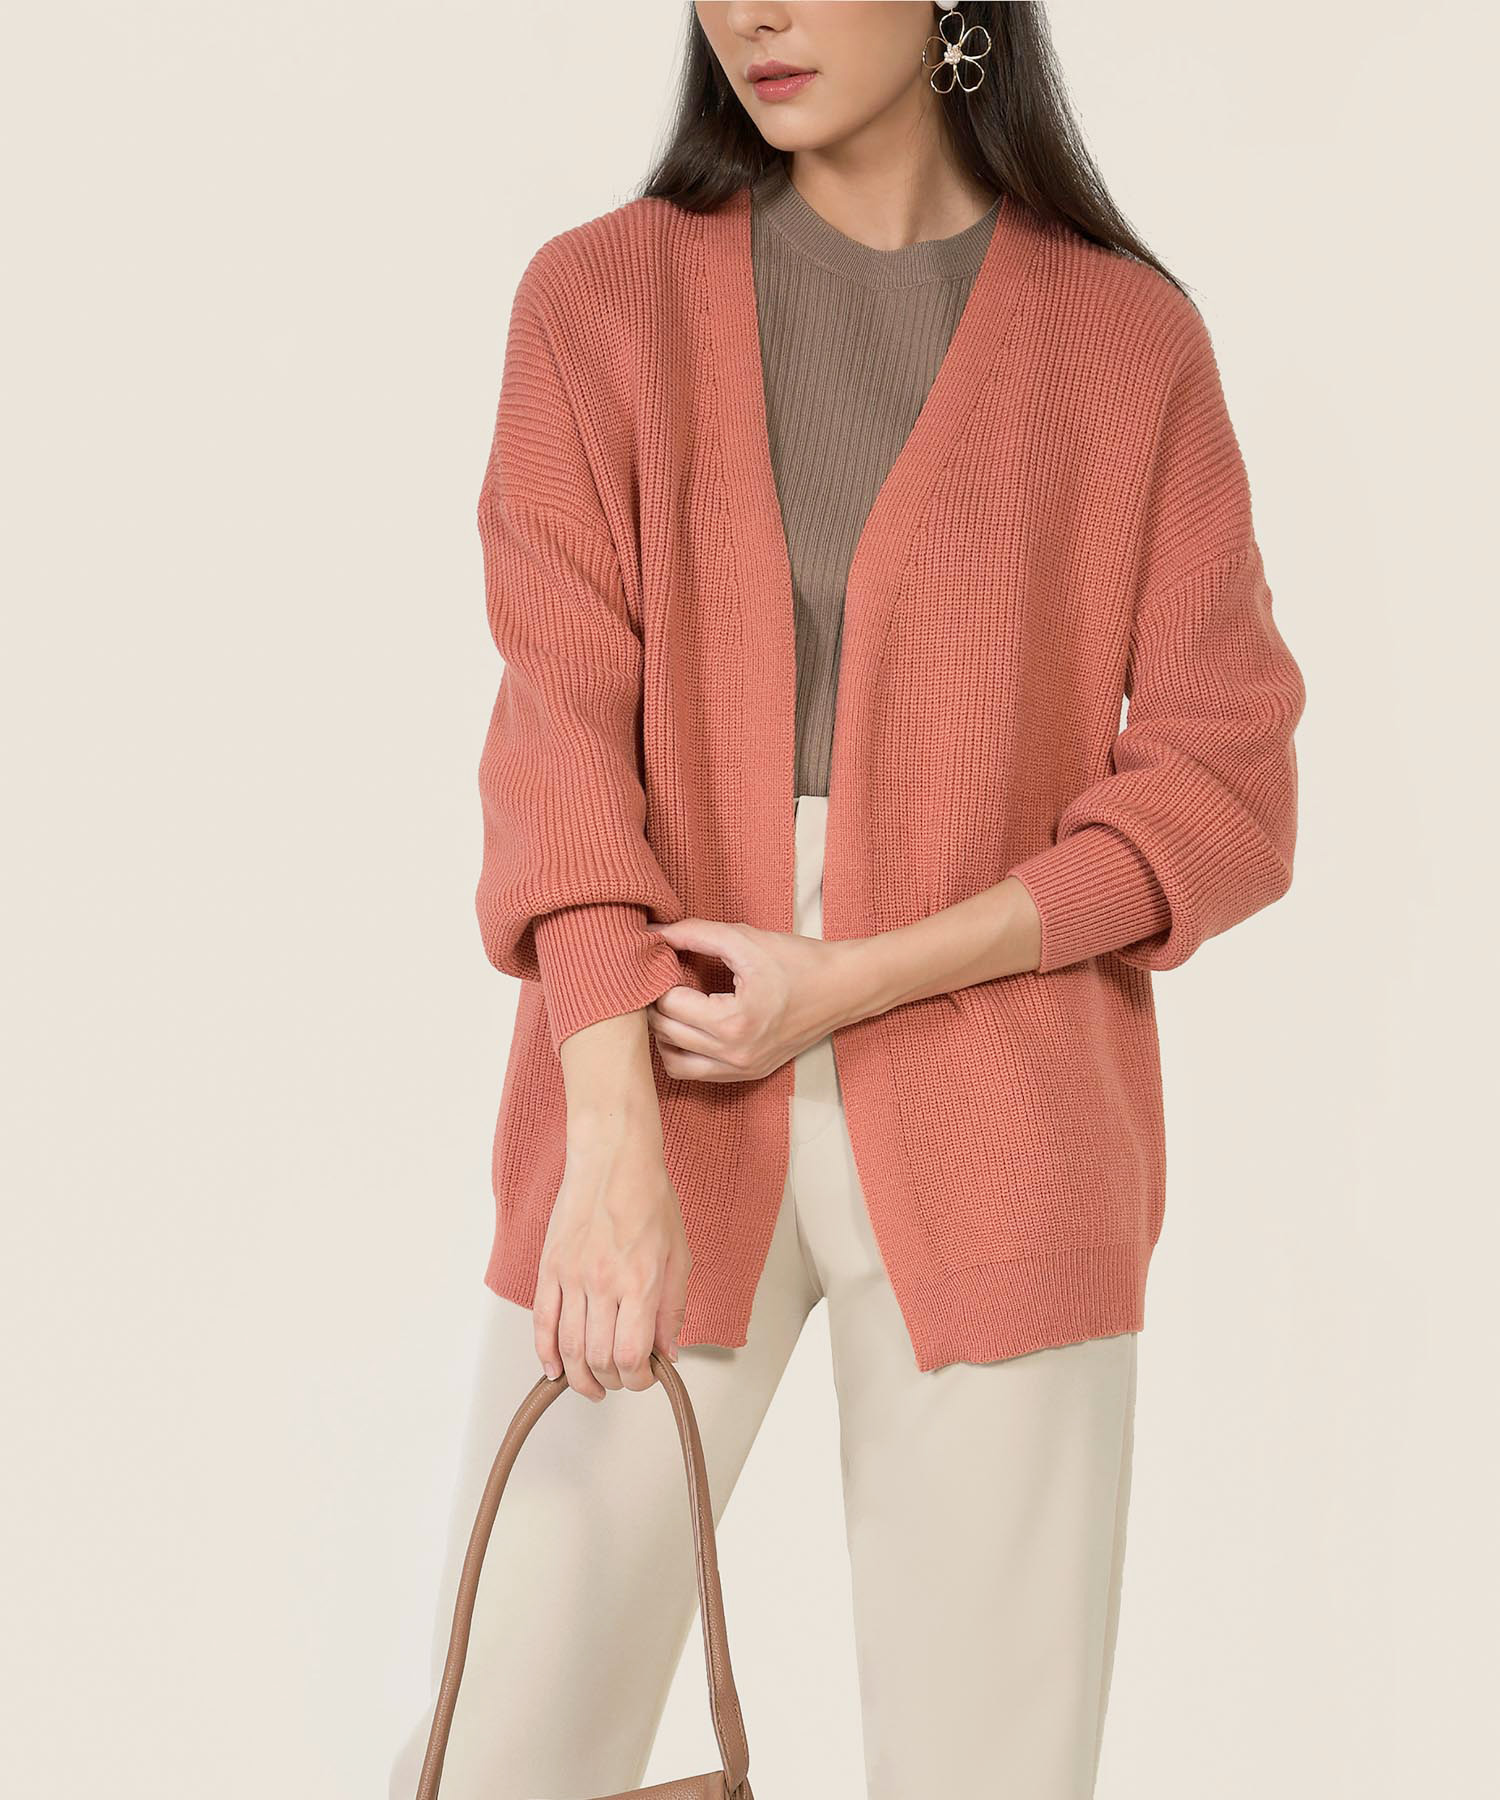 everett-knit-oversized-cardigan-coral-clay-1